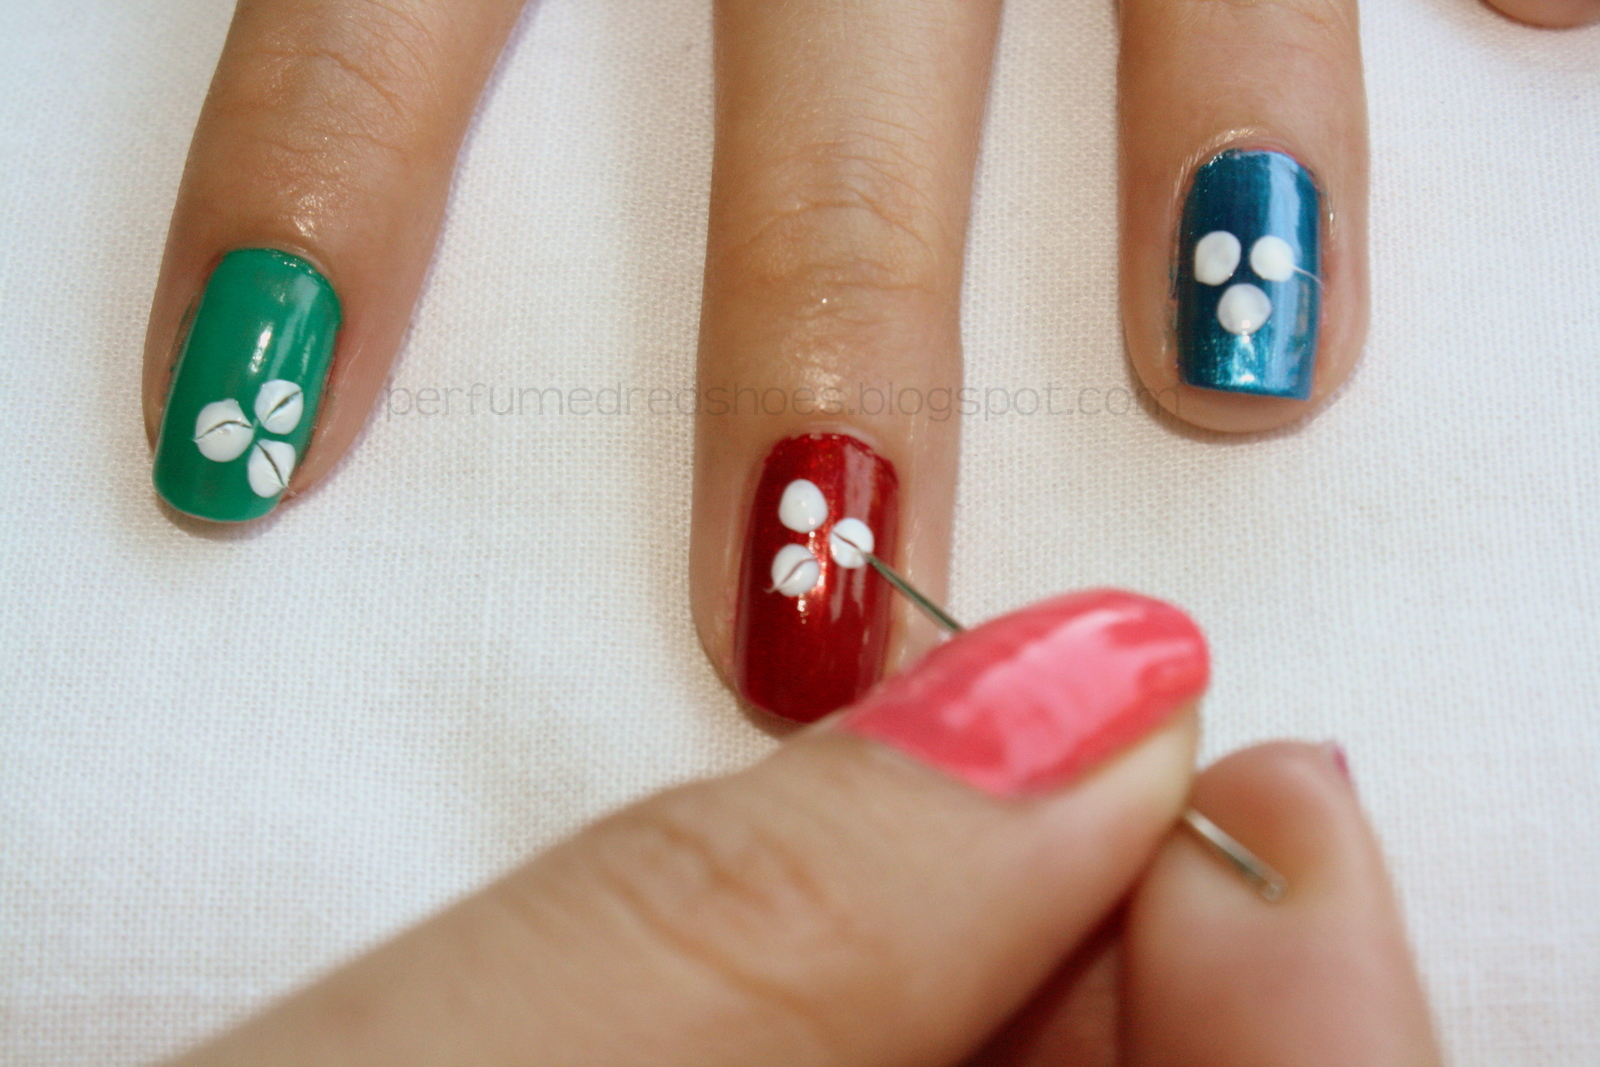 Cebu Fashion Bloggers, Cebu Bloggers, fashion bloggers, food bloggers, beauty blogger, cebu beauty blogger, lifestyle bloggers, asian blogger, cebu, philippines, social influencer, online influencer, philippine bloggers, philippine fashion bloggers, toni pino-oca, Cebu Fashion Bloggers network, Nail Art Challenge, Rustans Nail Art Challenge, Nail Art Tutorial, DIY